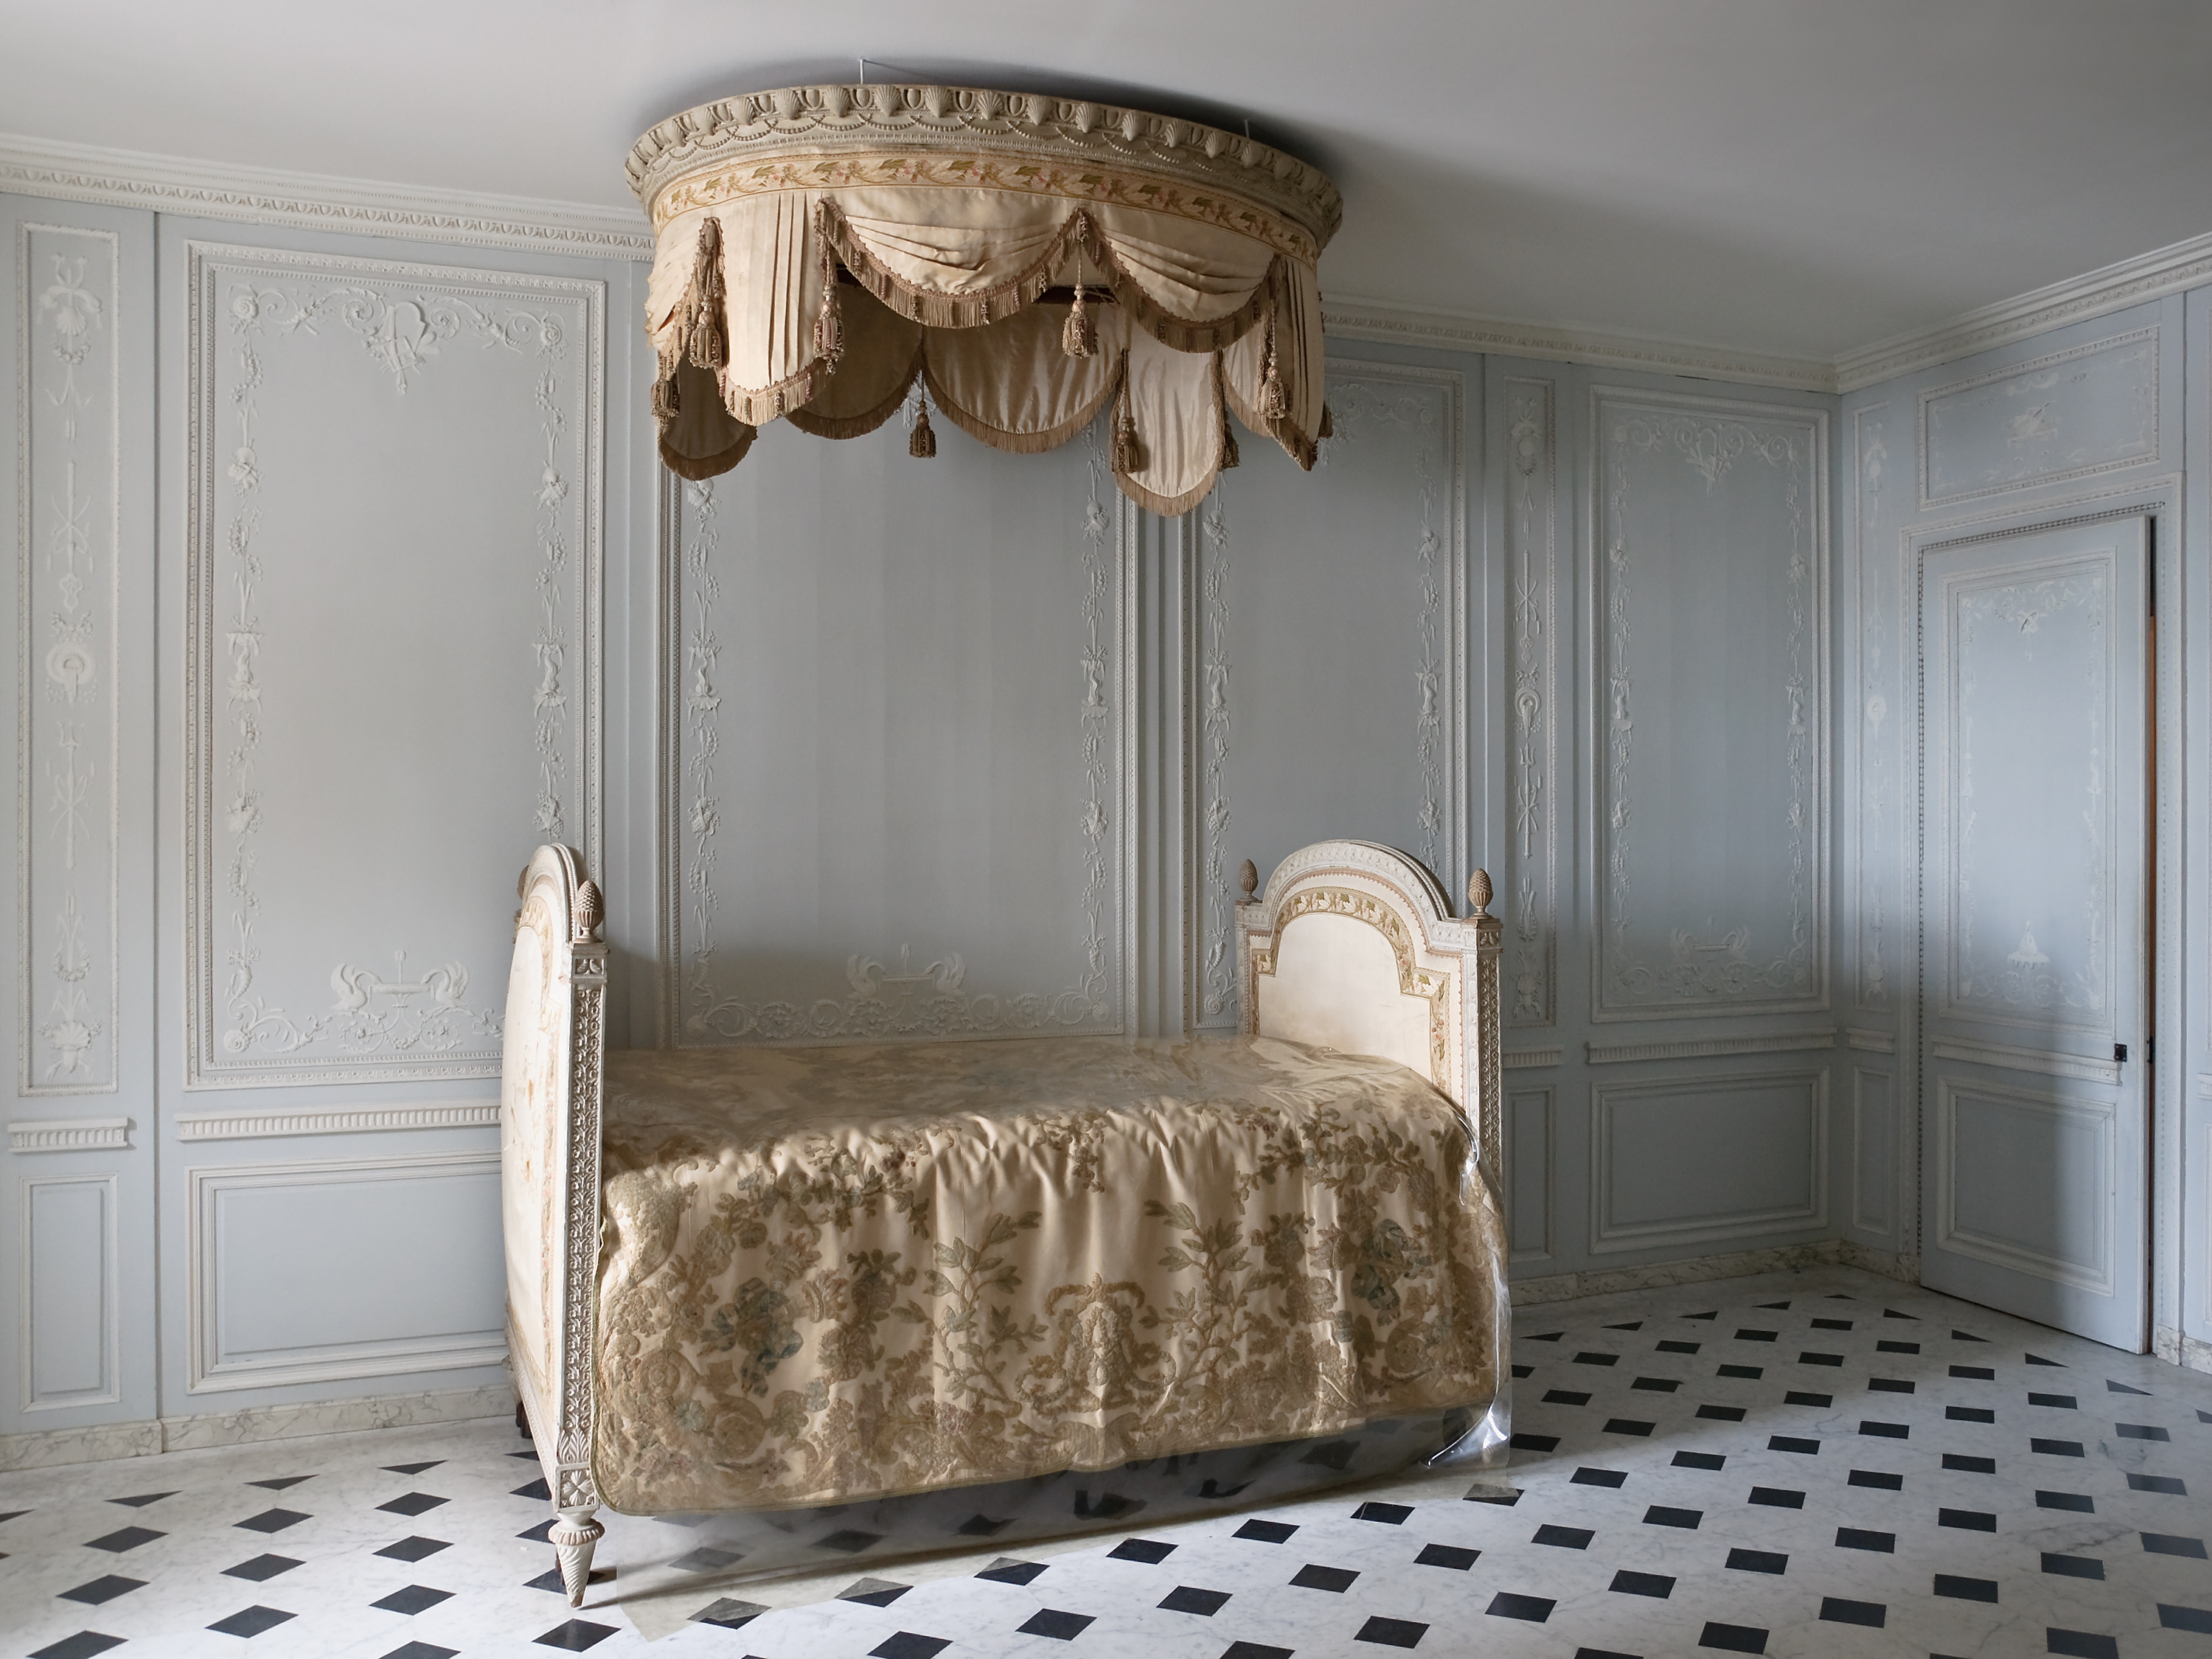 chaise longue xviii with L Art De Vivre A Versailles Au Xviii Siecle A108128640 on Chaise Longue Derecho Cholula Beige together with Me Tomo Cinco Minutos further Fundas De Sofa Chaise Longue Opta Por La  odidad in addition Glosario De Muebles together with Mesa Ovalada En Madera De Pitchpine.